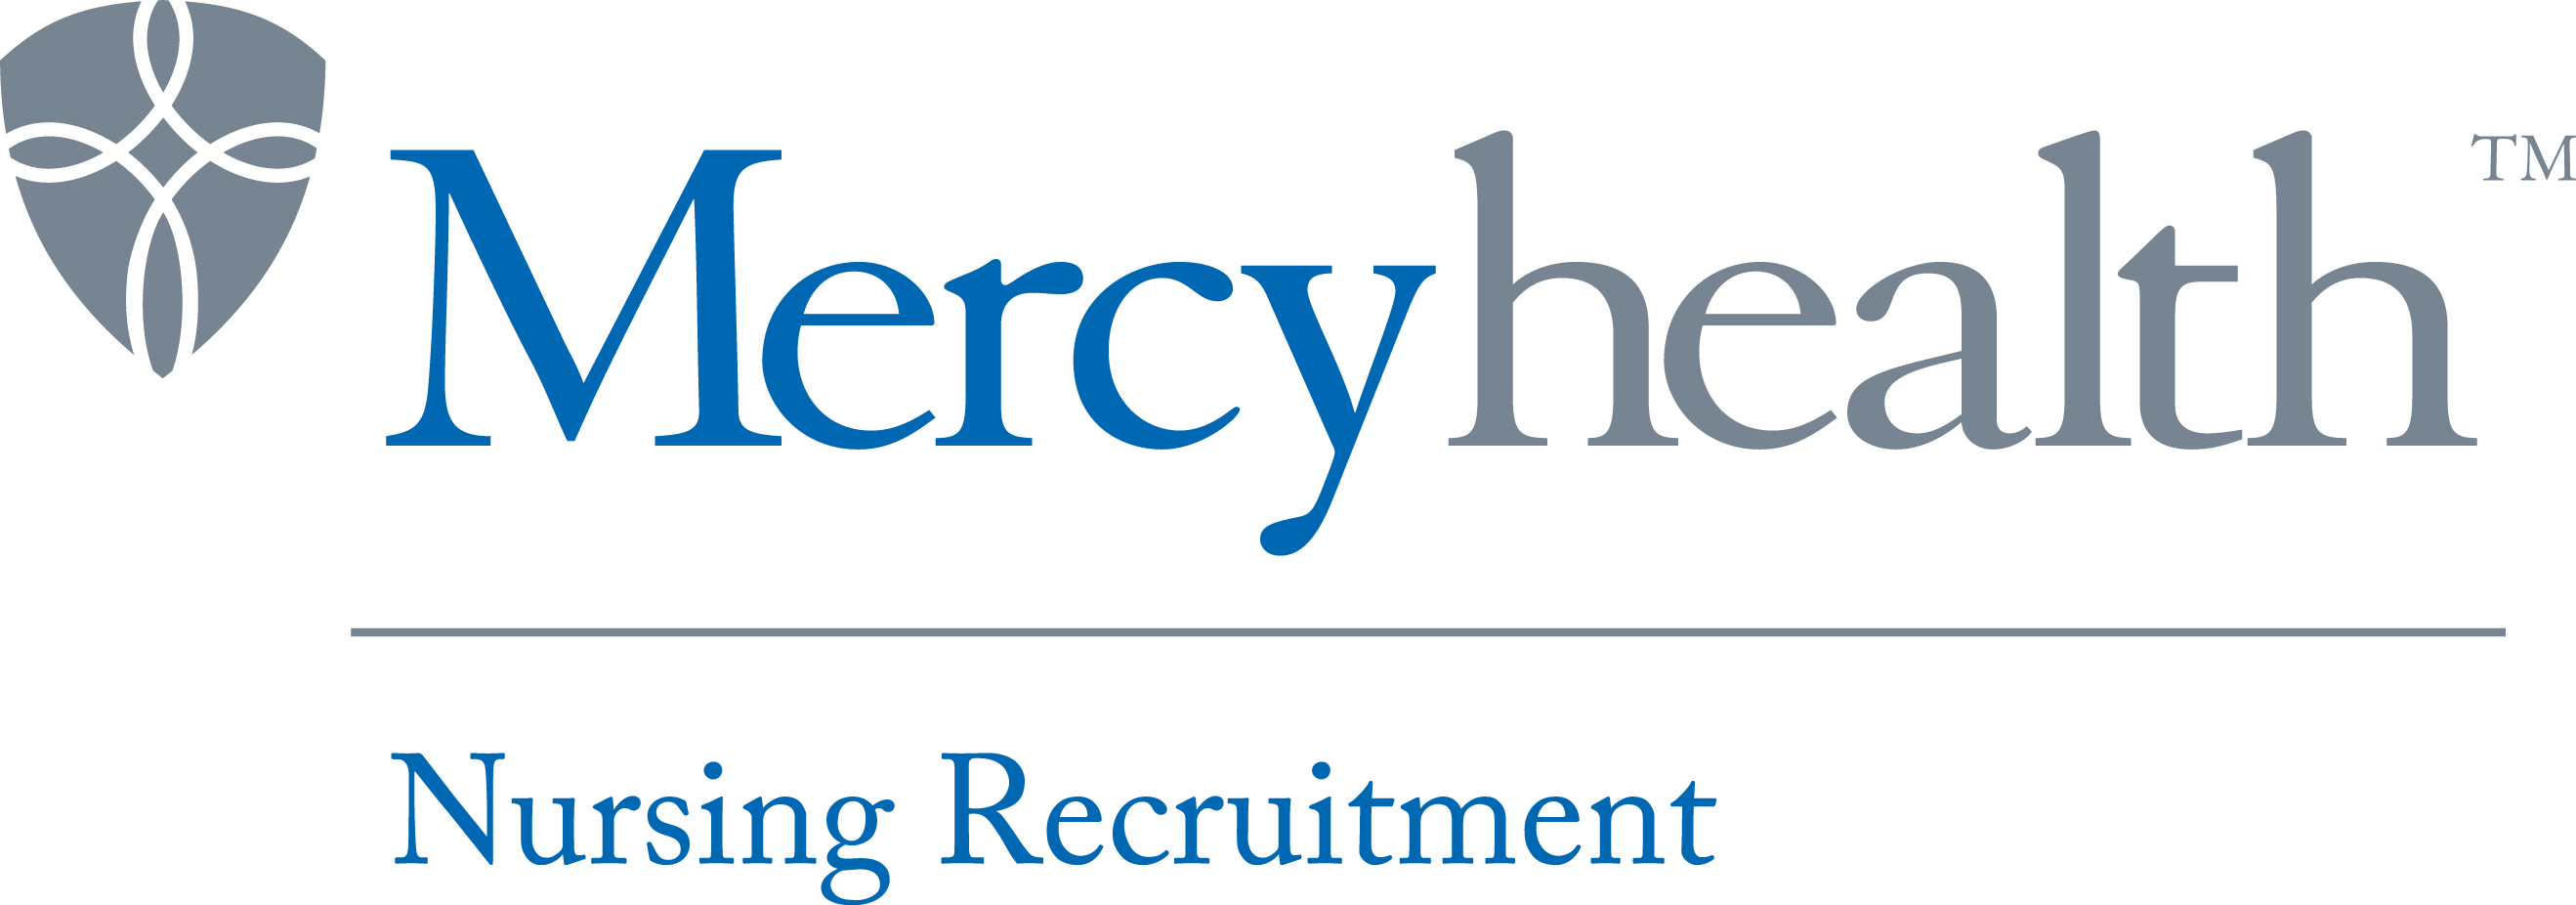 Mercyhealth - Nursing Recruitment